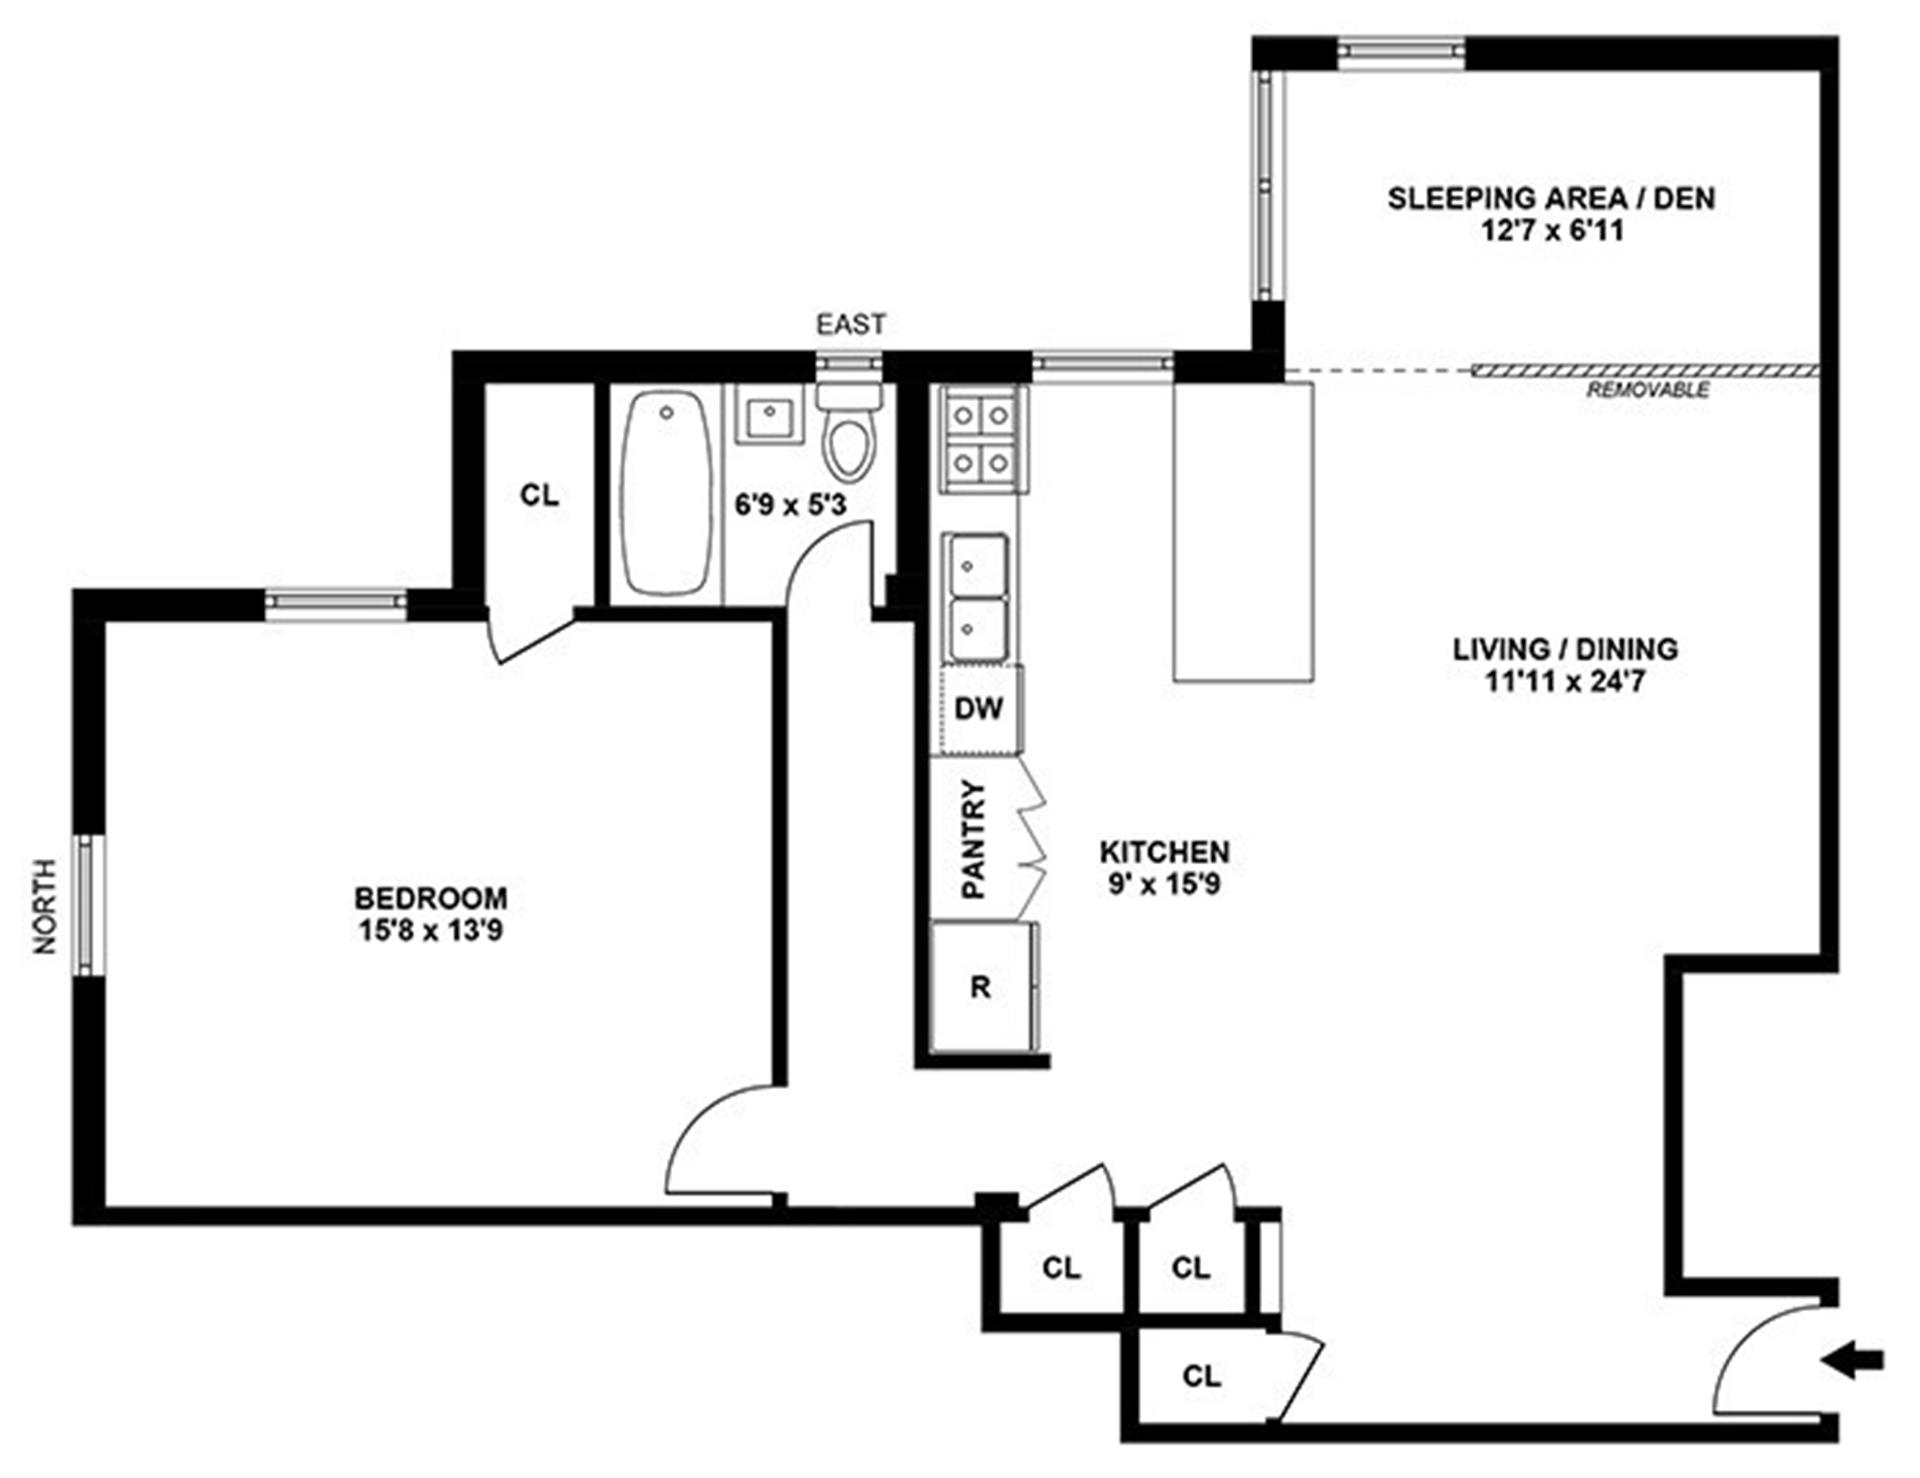 Floor plan of 811 Cortelyou Rd, 6F - Kensington, New York